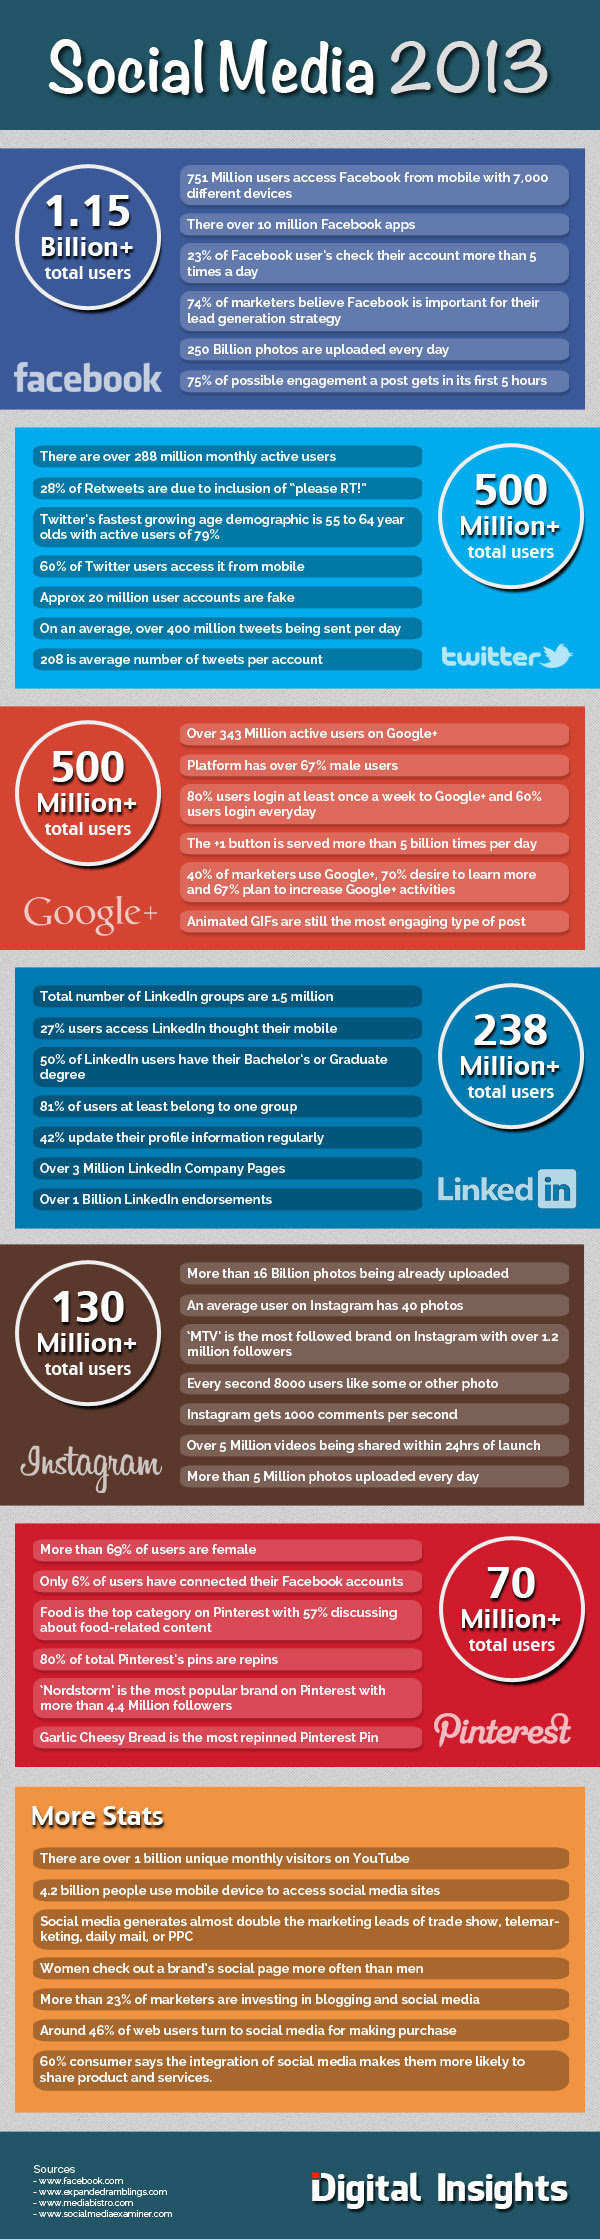 Social Media Trends for 2013 and What They Mean for Your Company